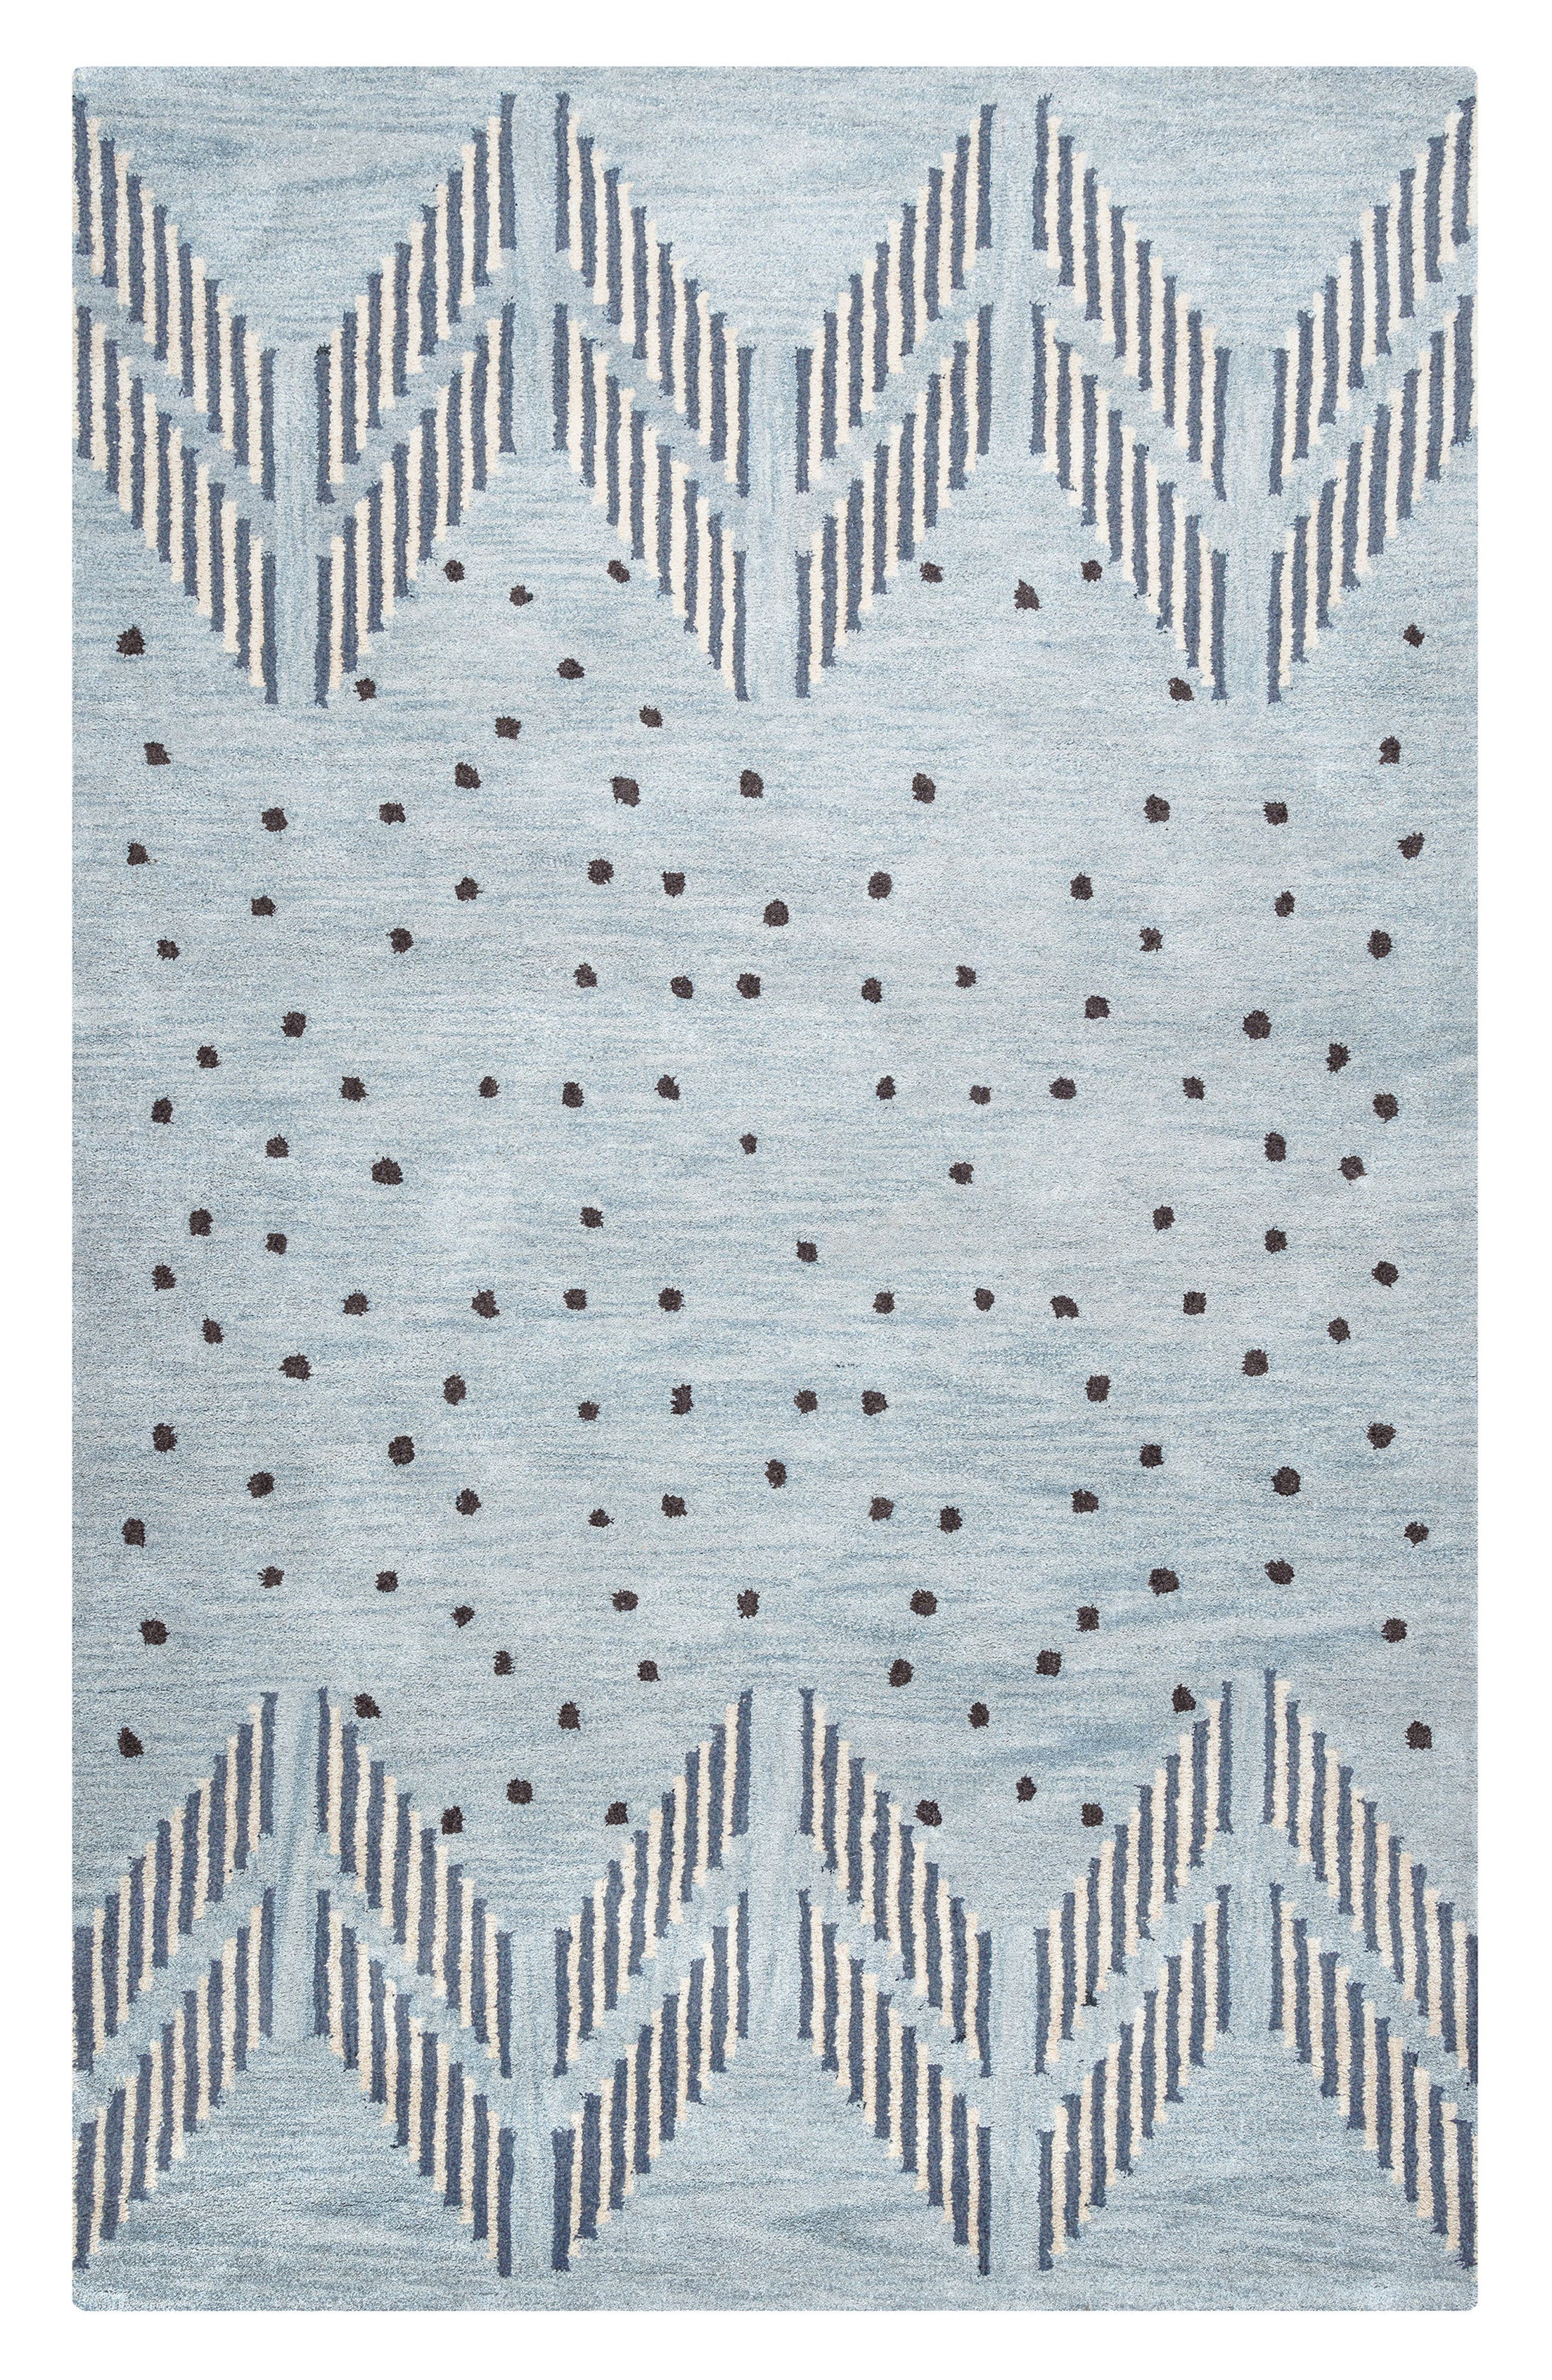 Alternate Image 1 Selected - Rizzy Home 'Tumble Weed Loft' Hand Tufted Wool Area Rug